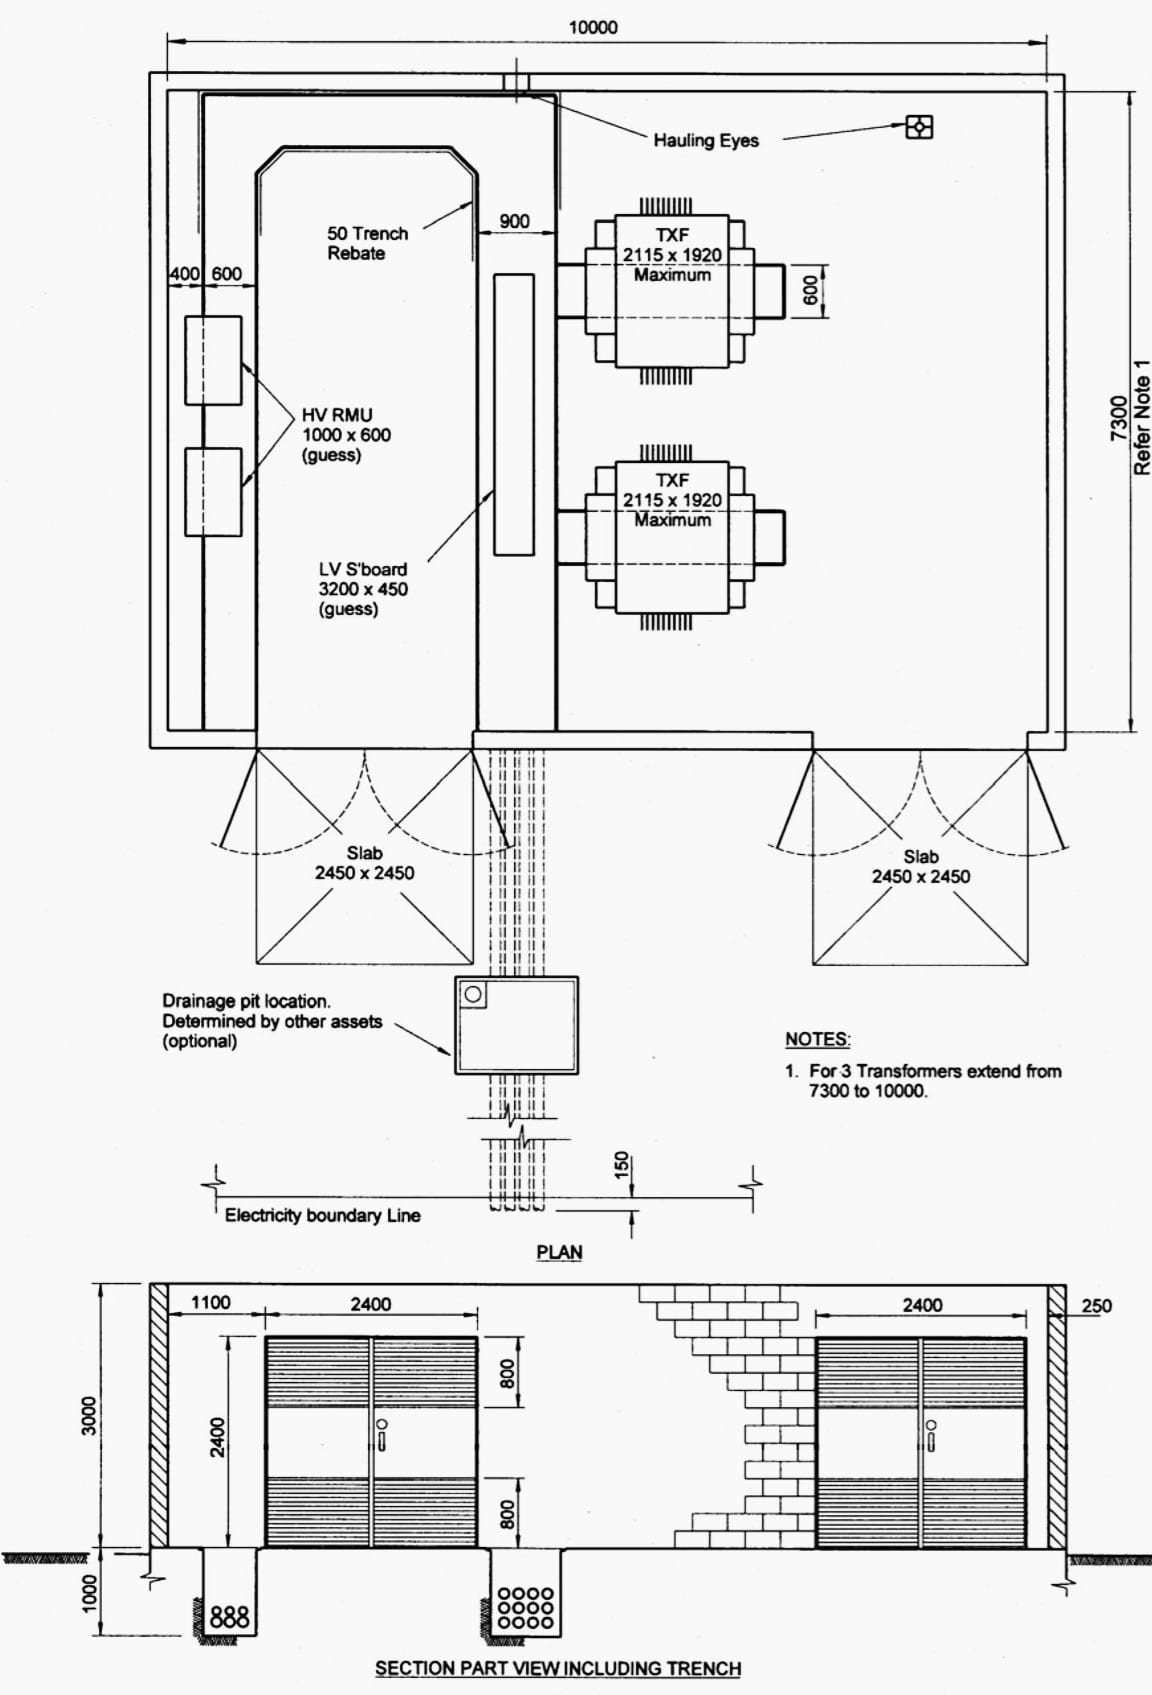 electrical plan and layout